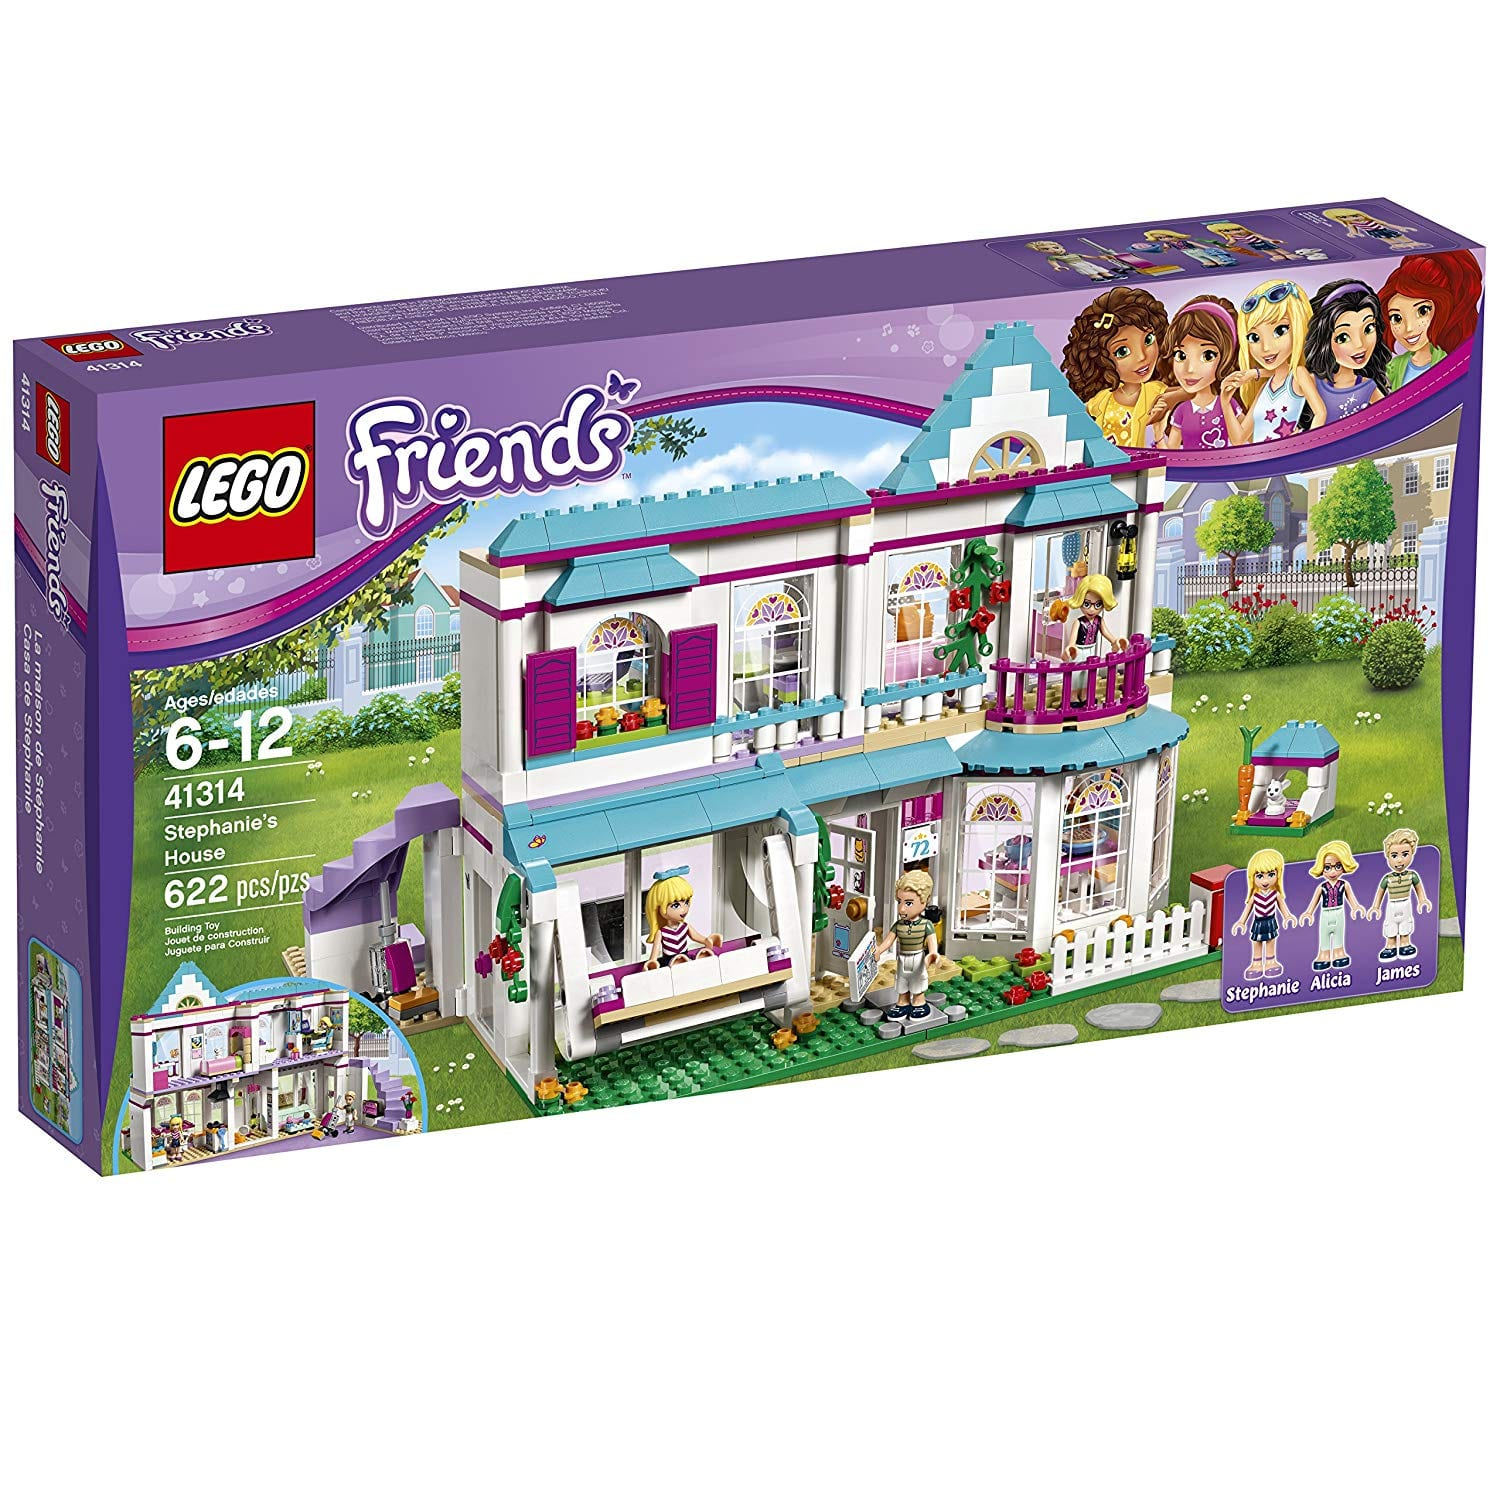 LEGO Friends Stephanie's House 41314 - $47.99 + Free Shipping